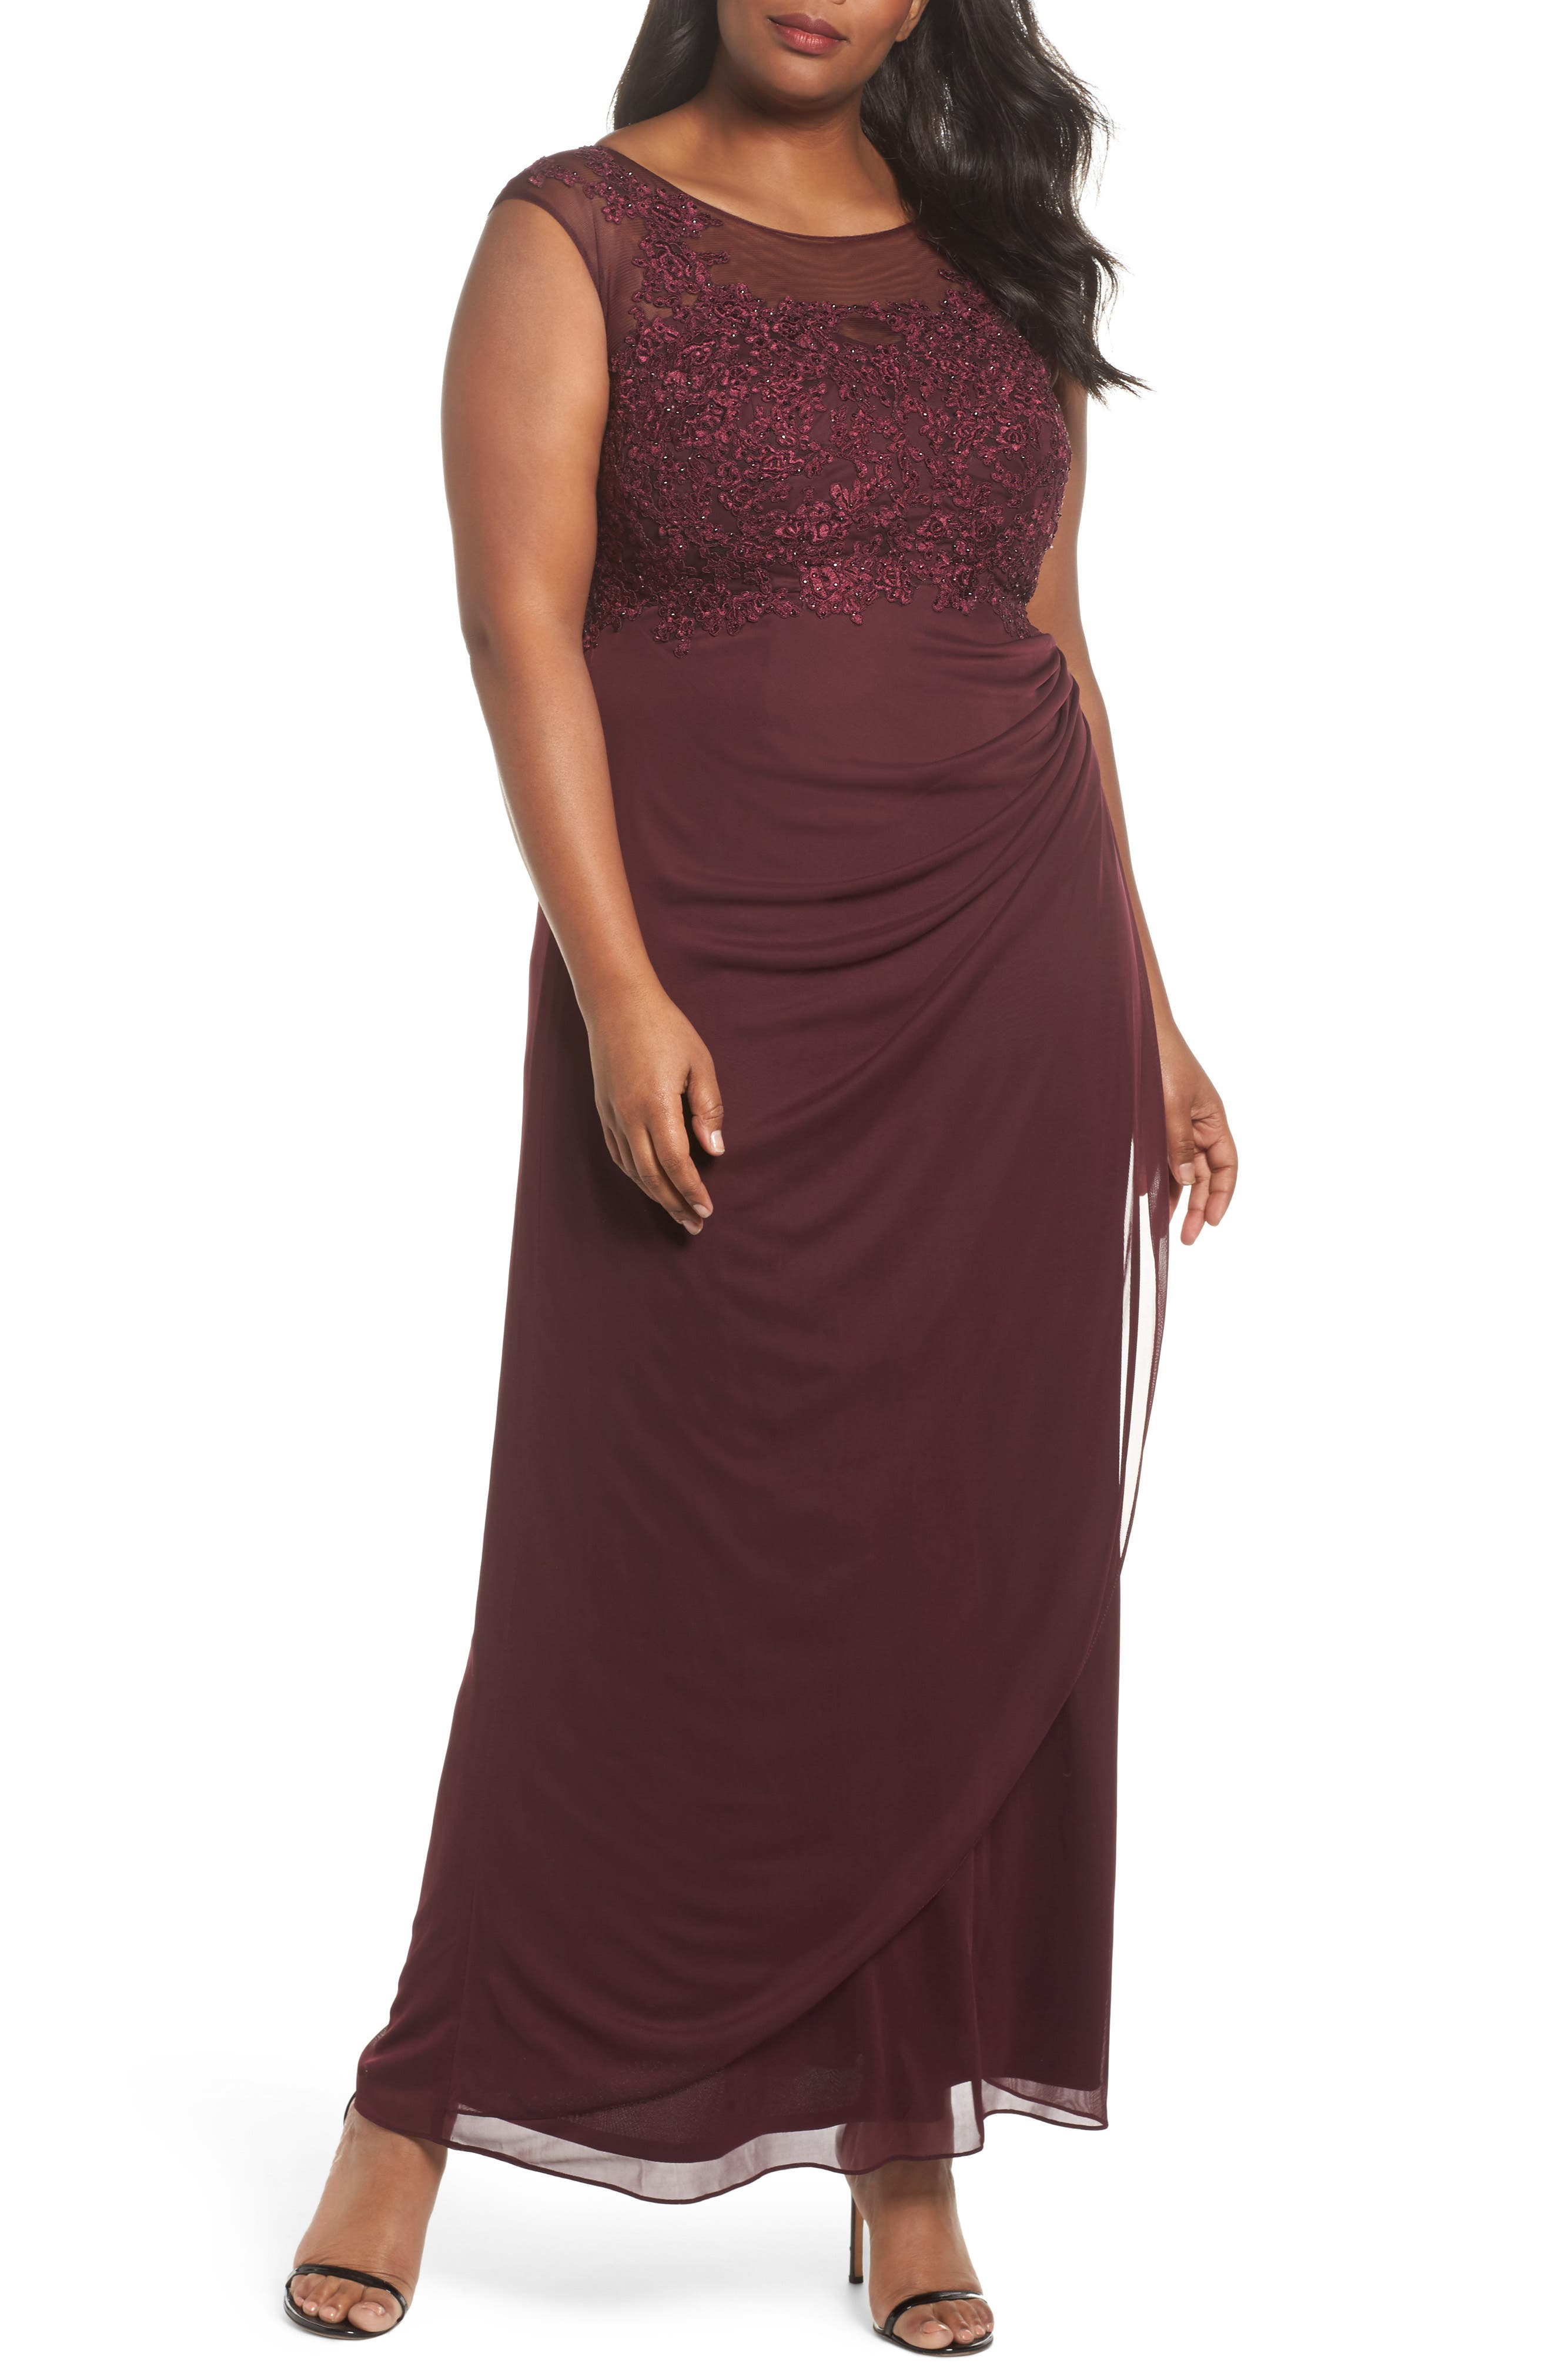 Alternate Image 1 Selected - Decode 1.8 Embellished Ruched Jersey Gown (Plus Size)